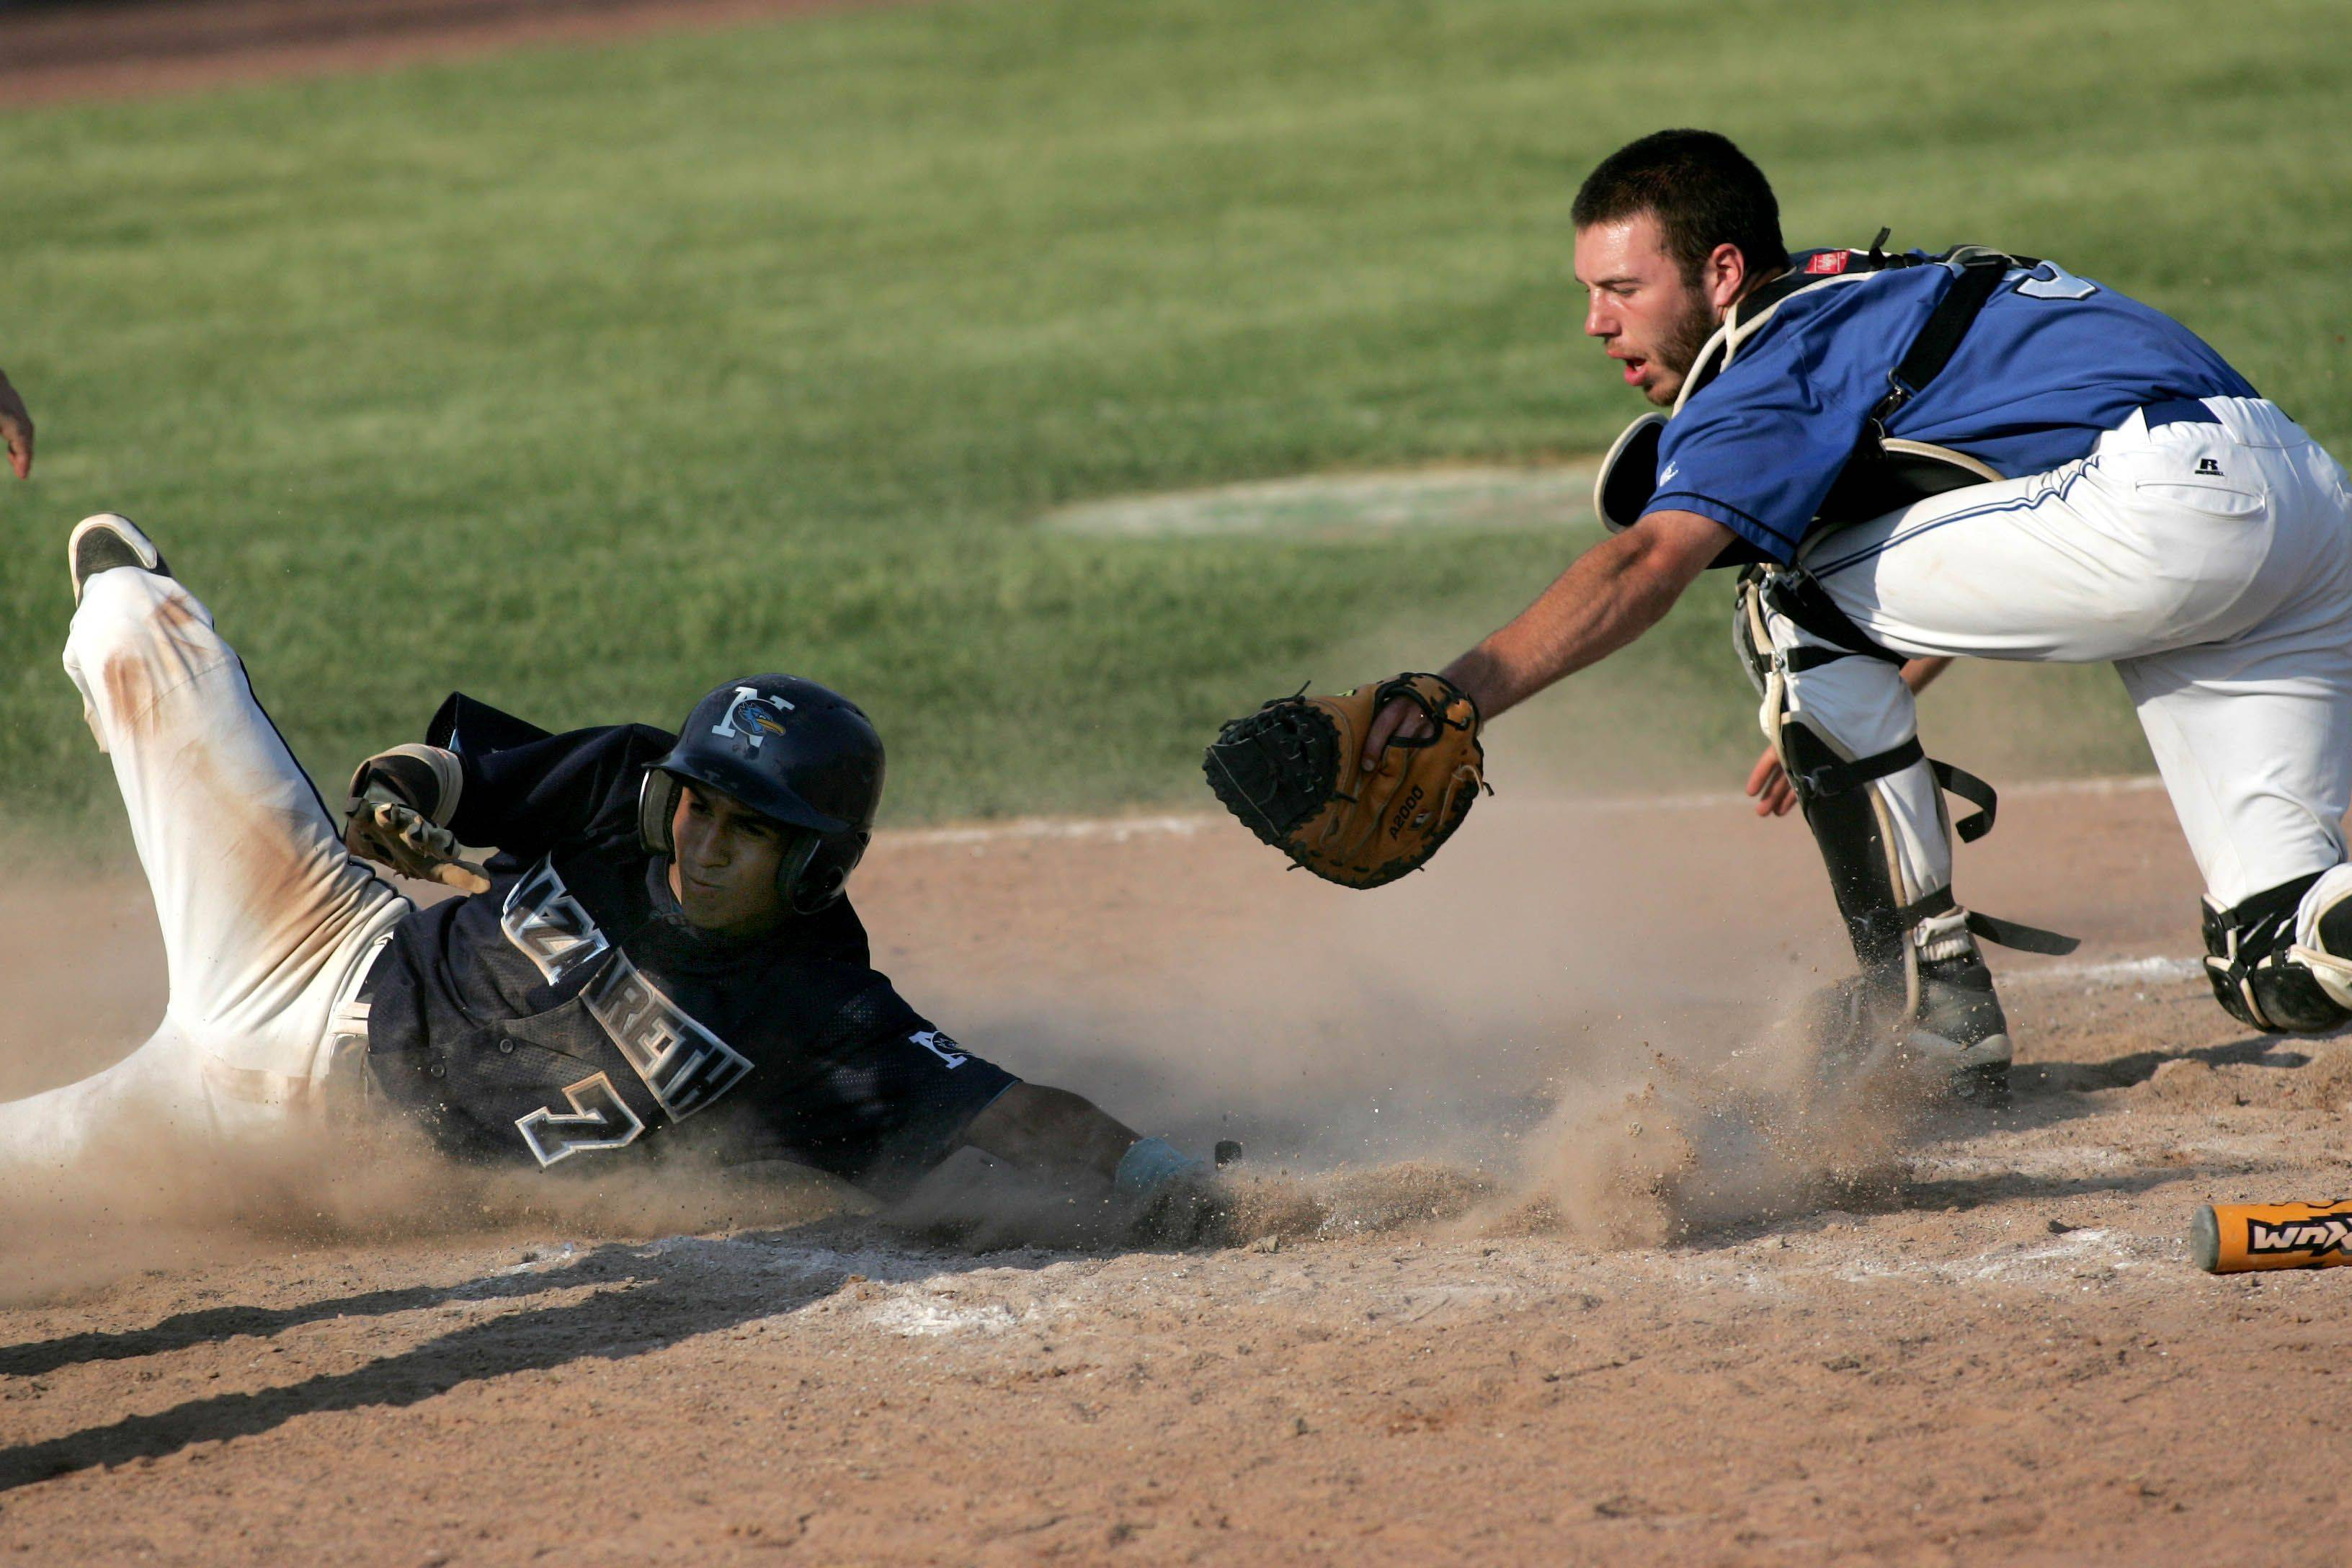 St. Francis catcher K.C. Zimmerman reaches out to tag Michael Barajas of Nazareth Academy, but he was safe at home in Class 3A supersectional baseball Monday in Naperville.